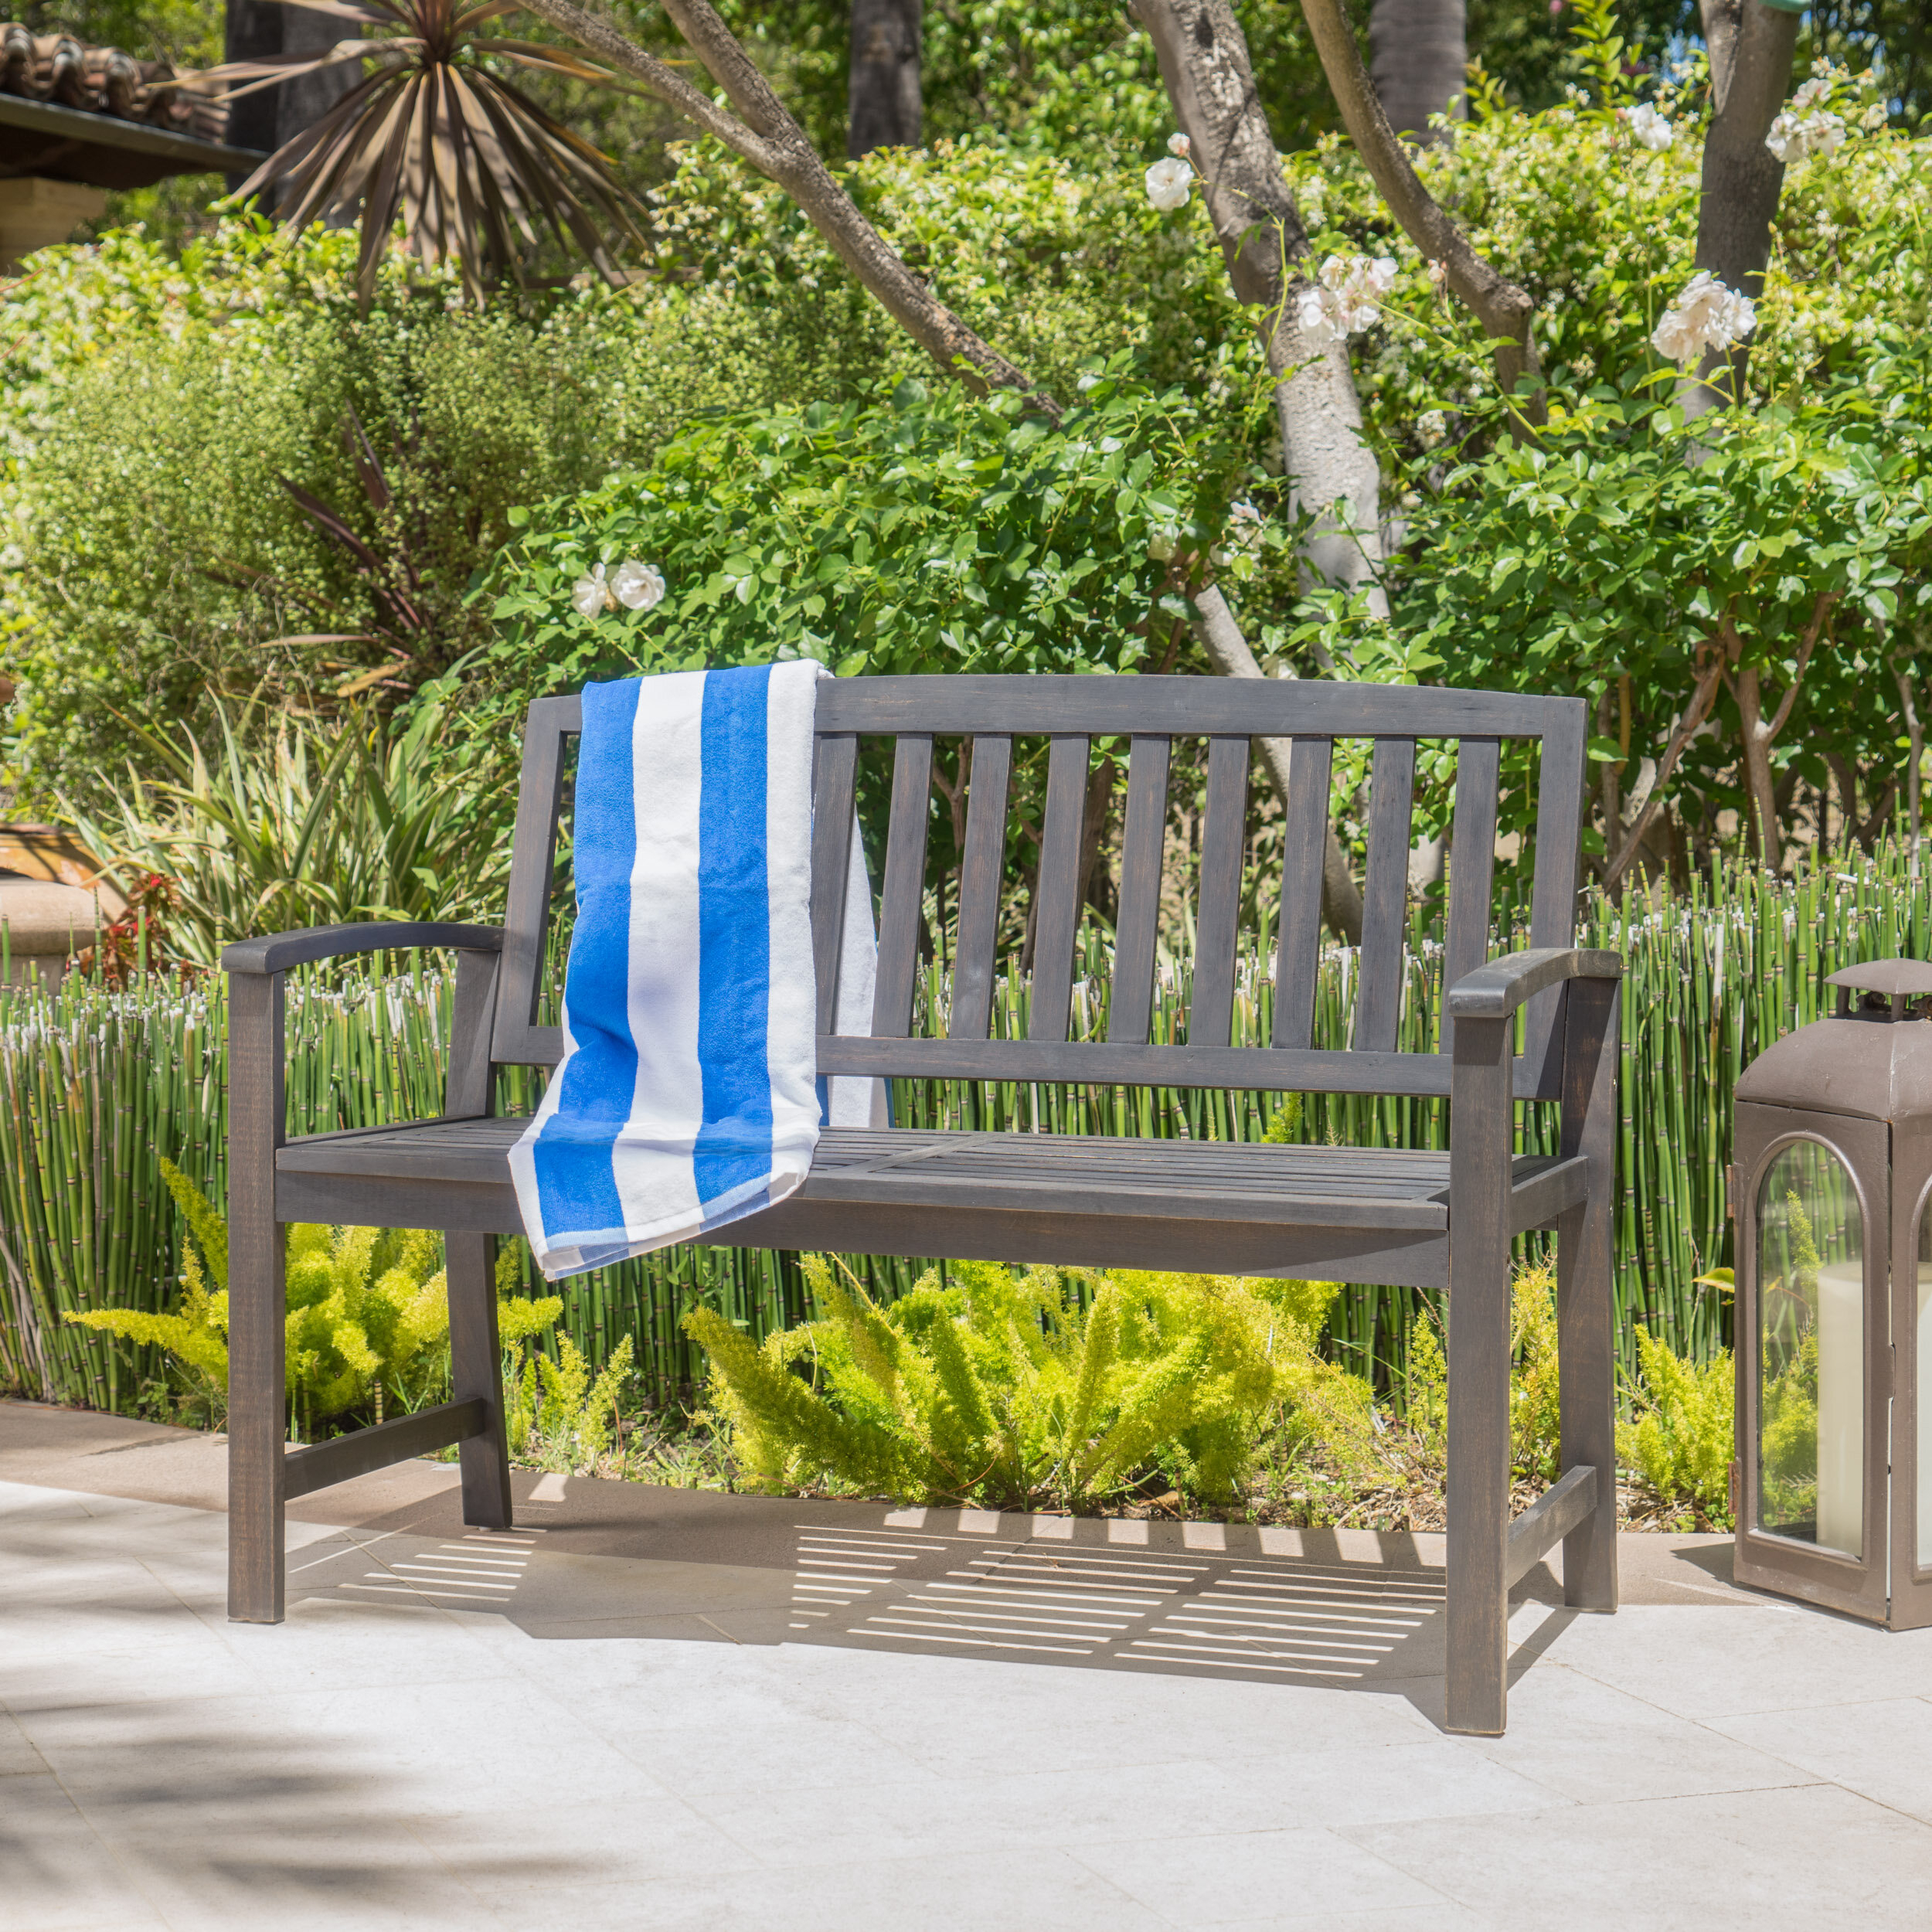 Zephyrine Patio Dining Wooden Picnic Bench Within Lucille Timberland Wooden Garden Benches (View 14 of 25)